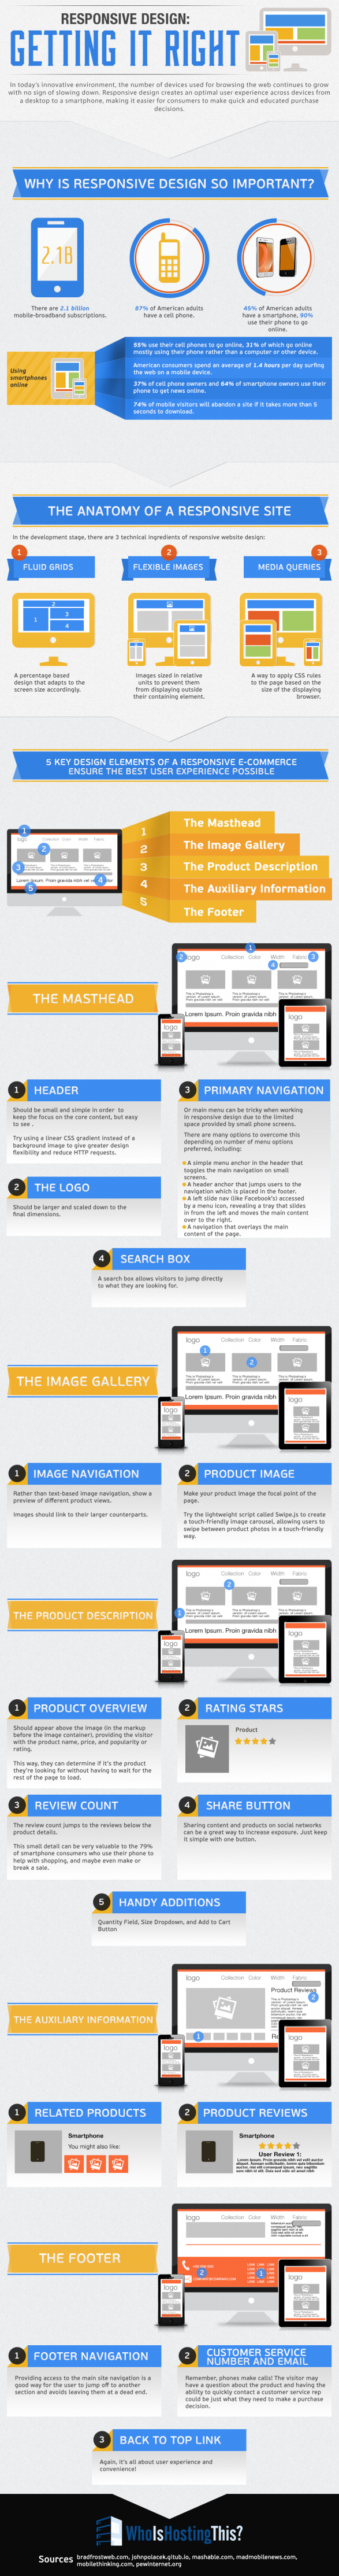 "Responsive Design ""Getting It Right"""